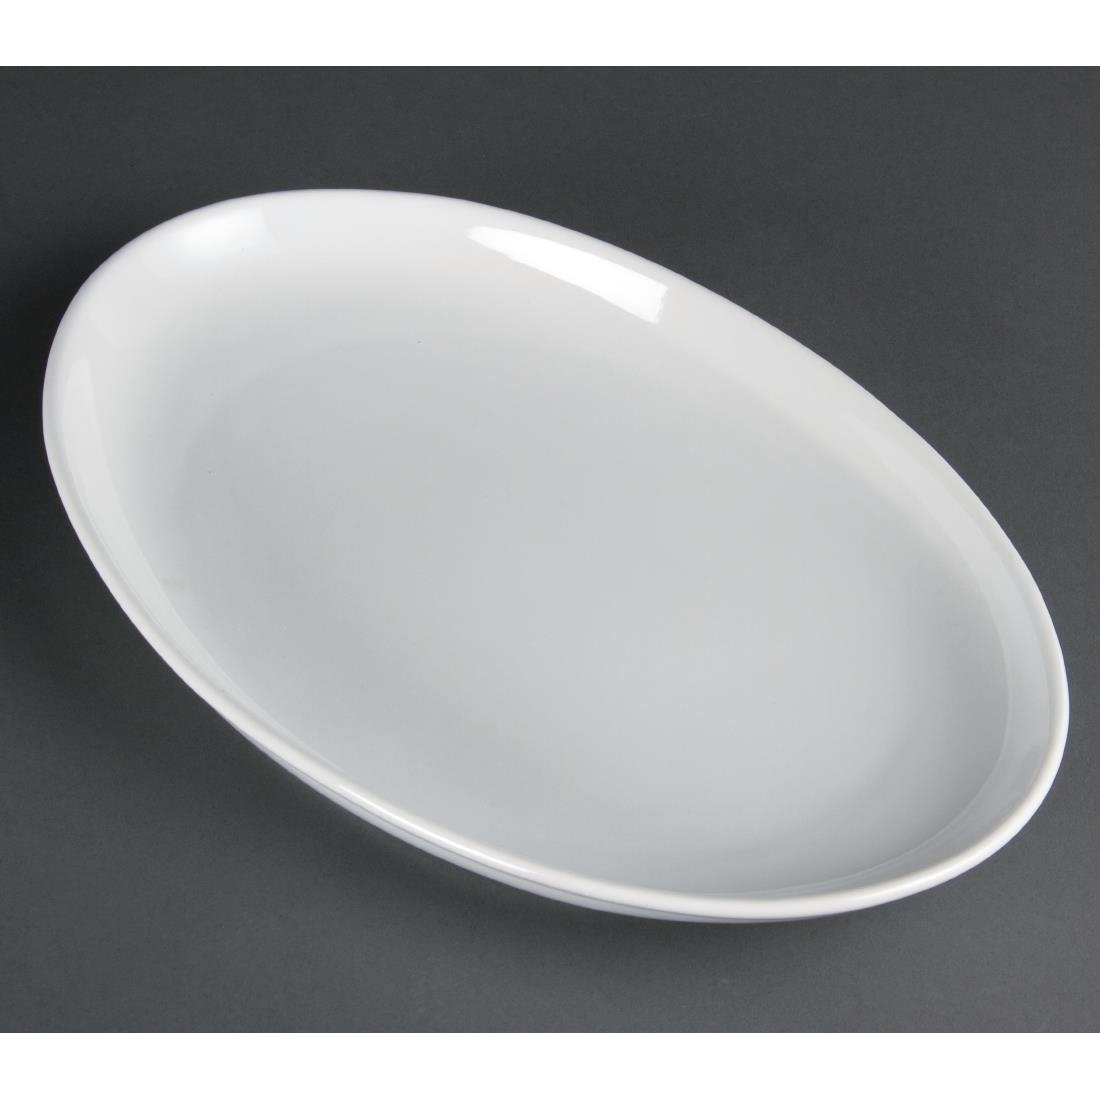 "Olympia French Deep Oval Plate White - 365mm 14 1/4"" (Box 2)"